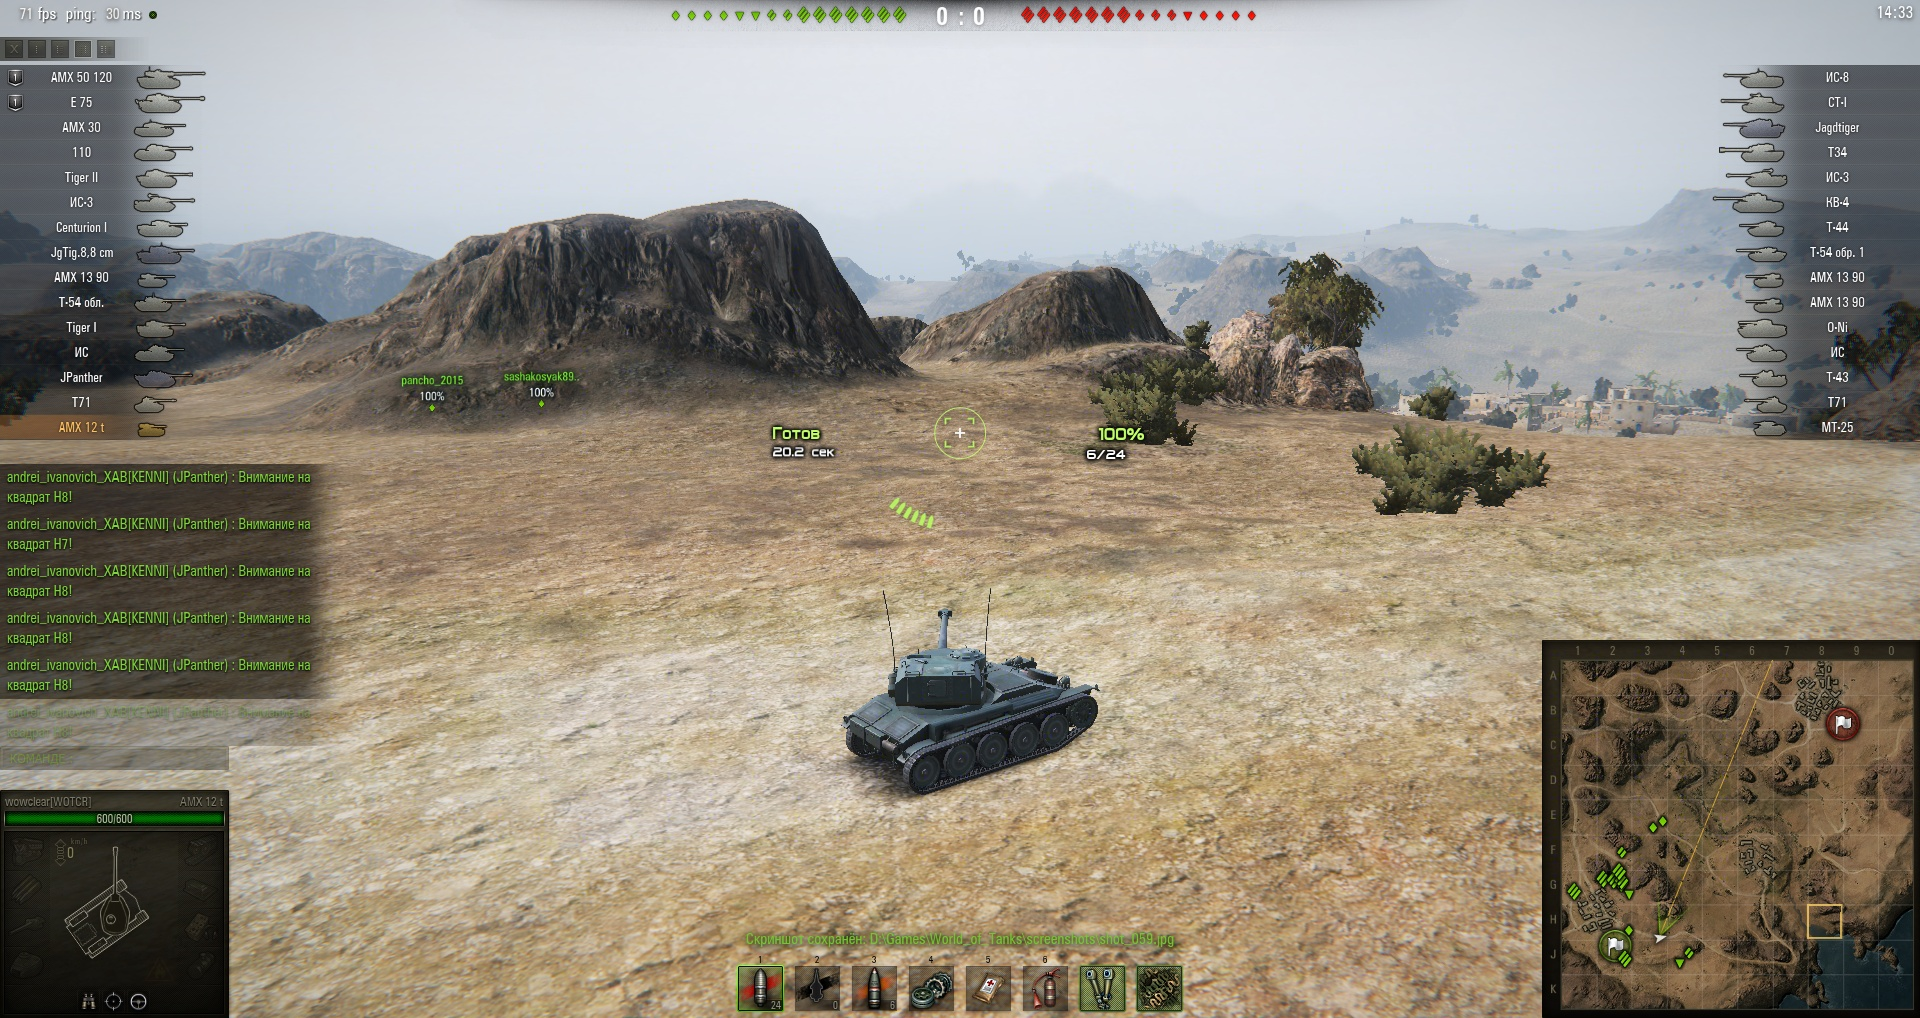 shot_060 Прицел как у Маракаси для World of Tanks 0 9 17 0